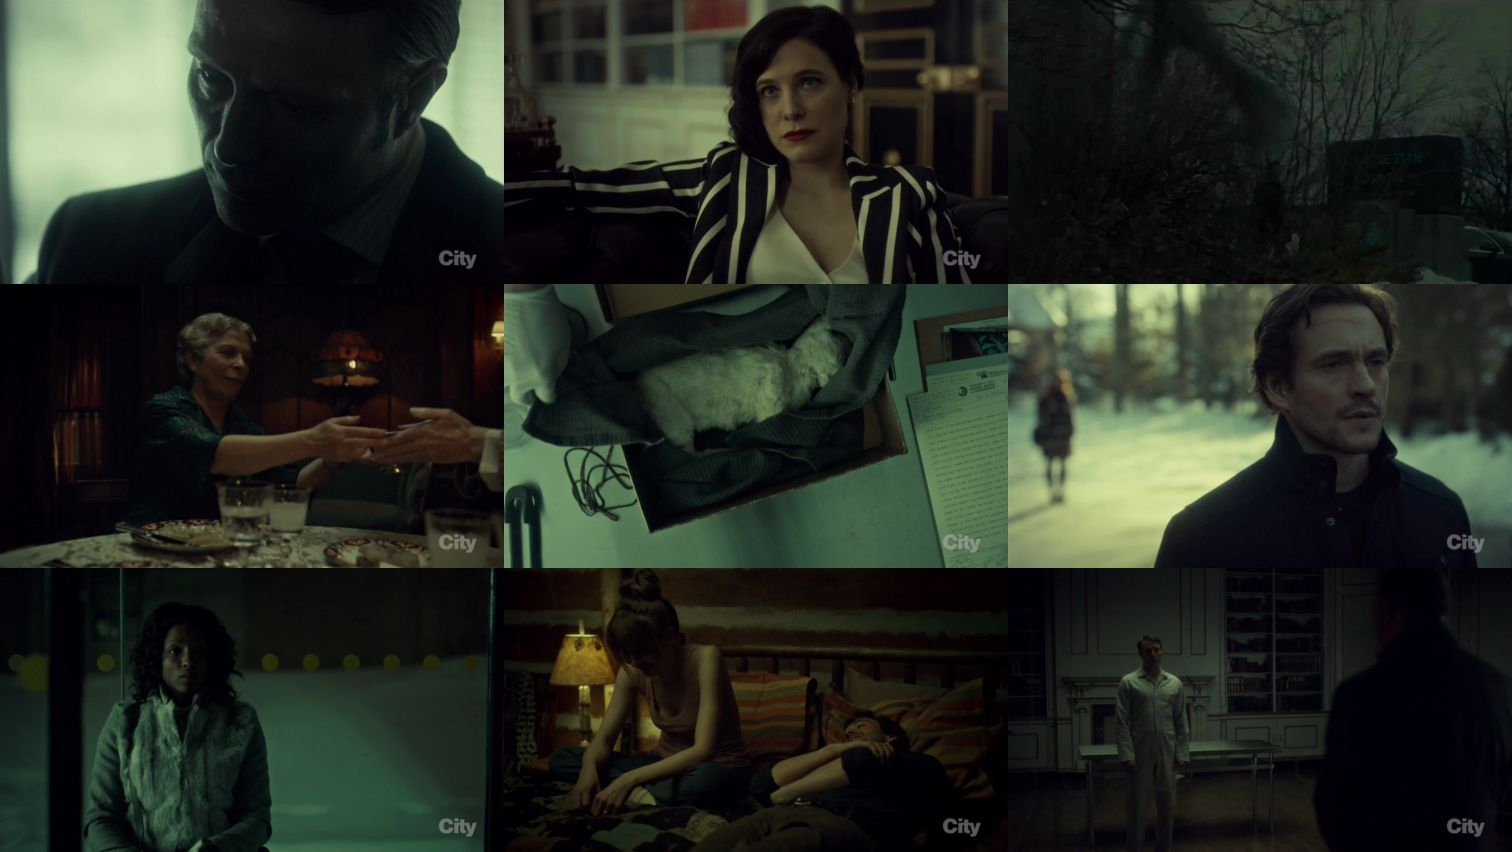 Hannibal S03E09 HDTV x264-KILLERS [MP4+ MKV 720P]